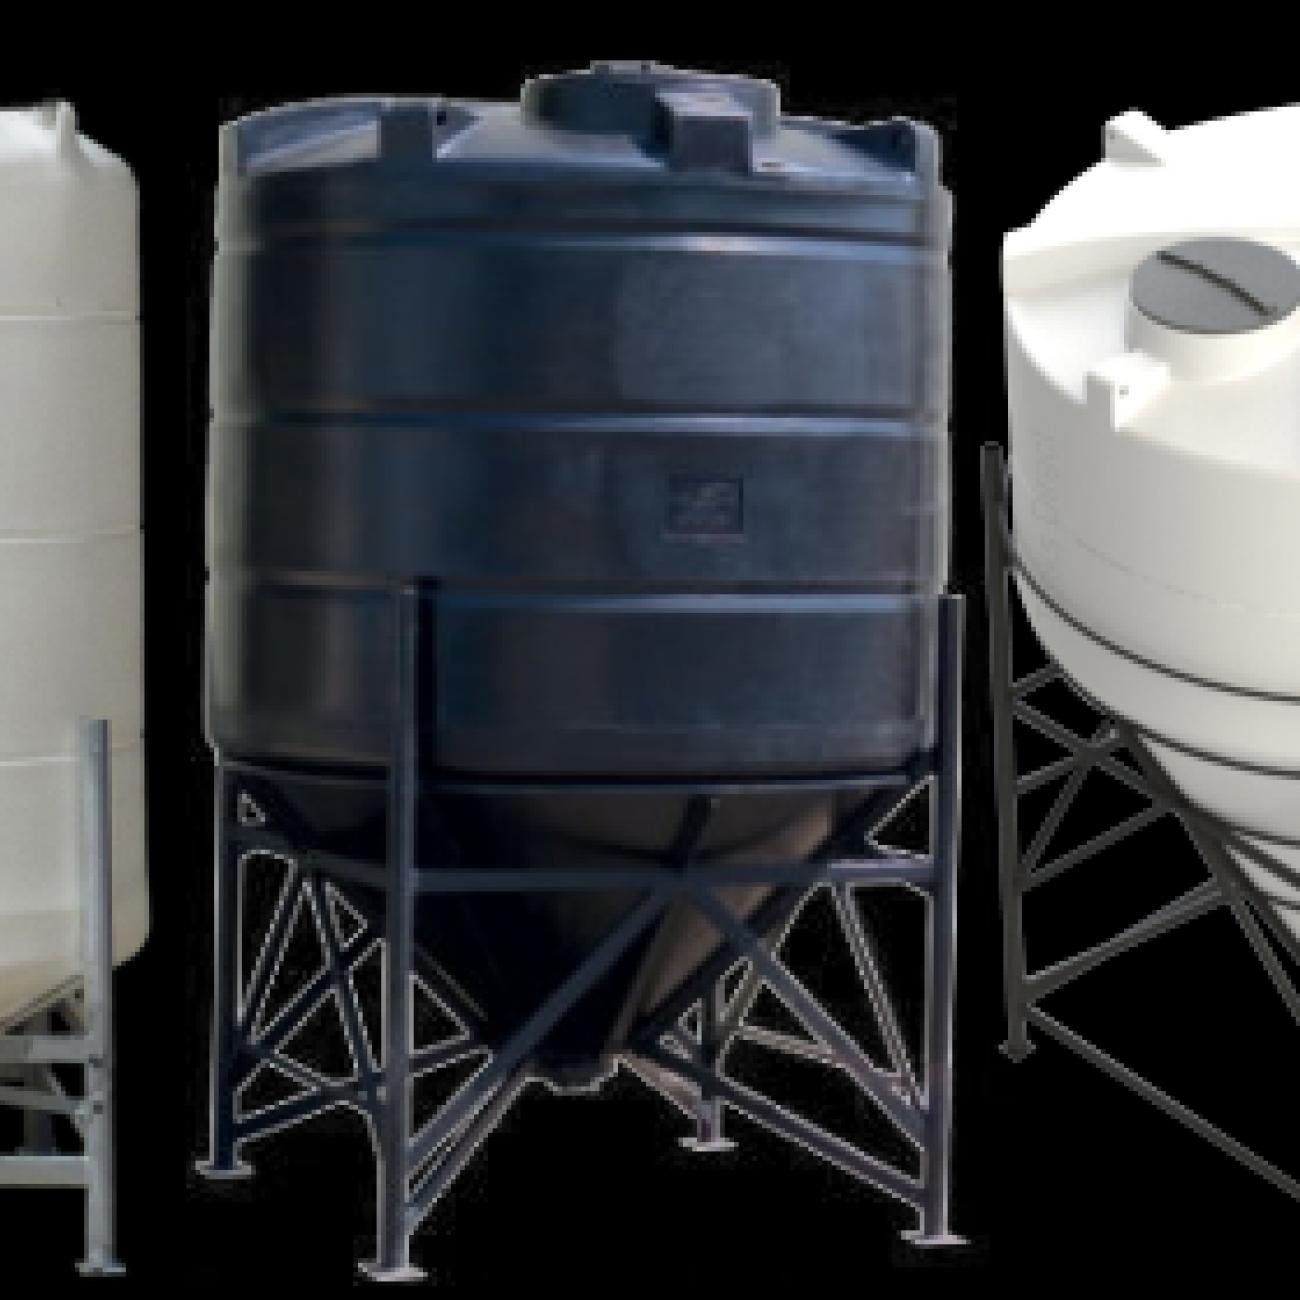 Conical tank storage